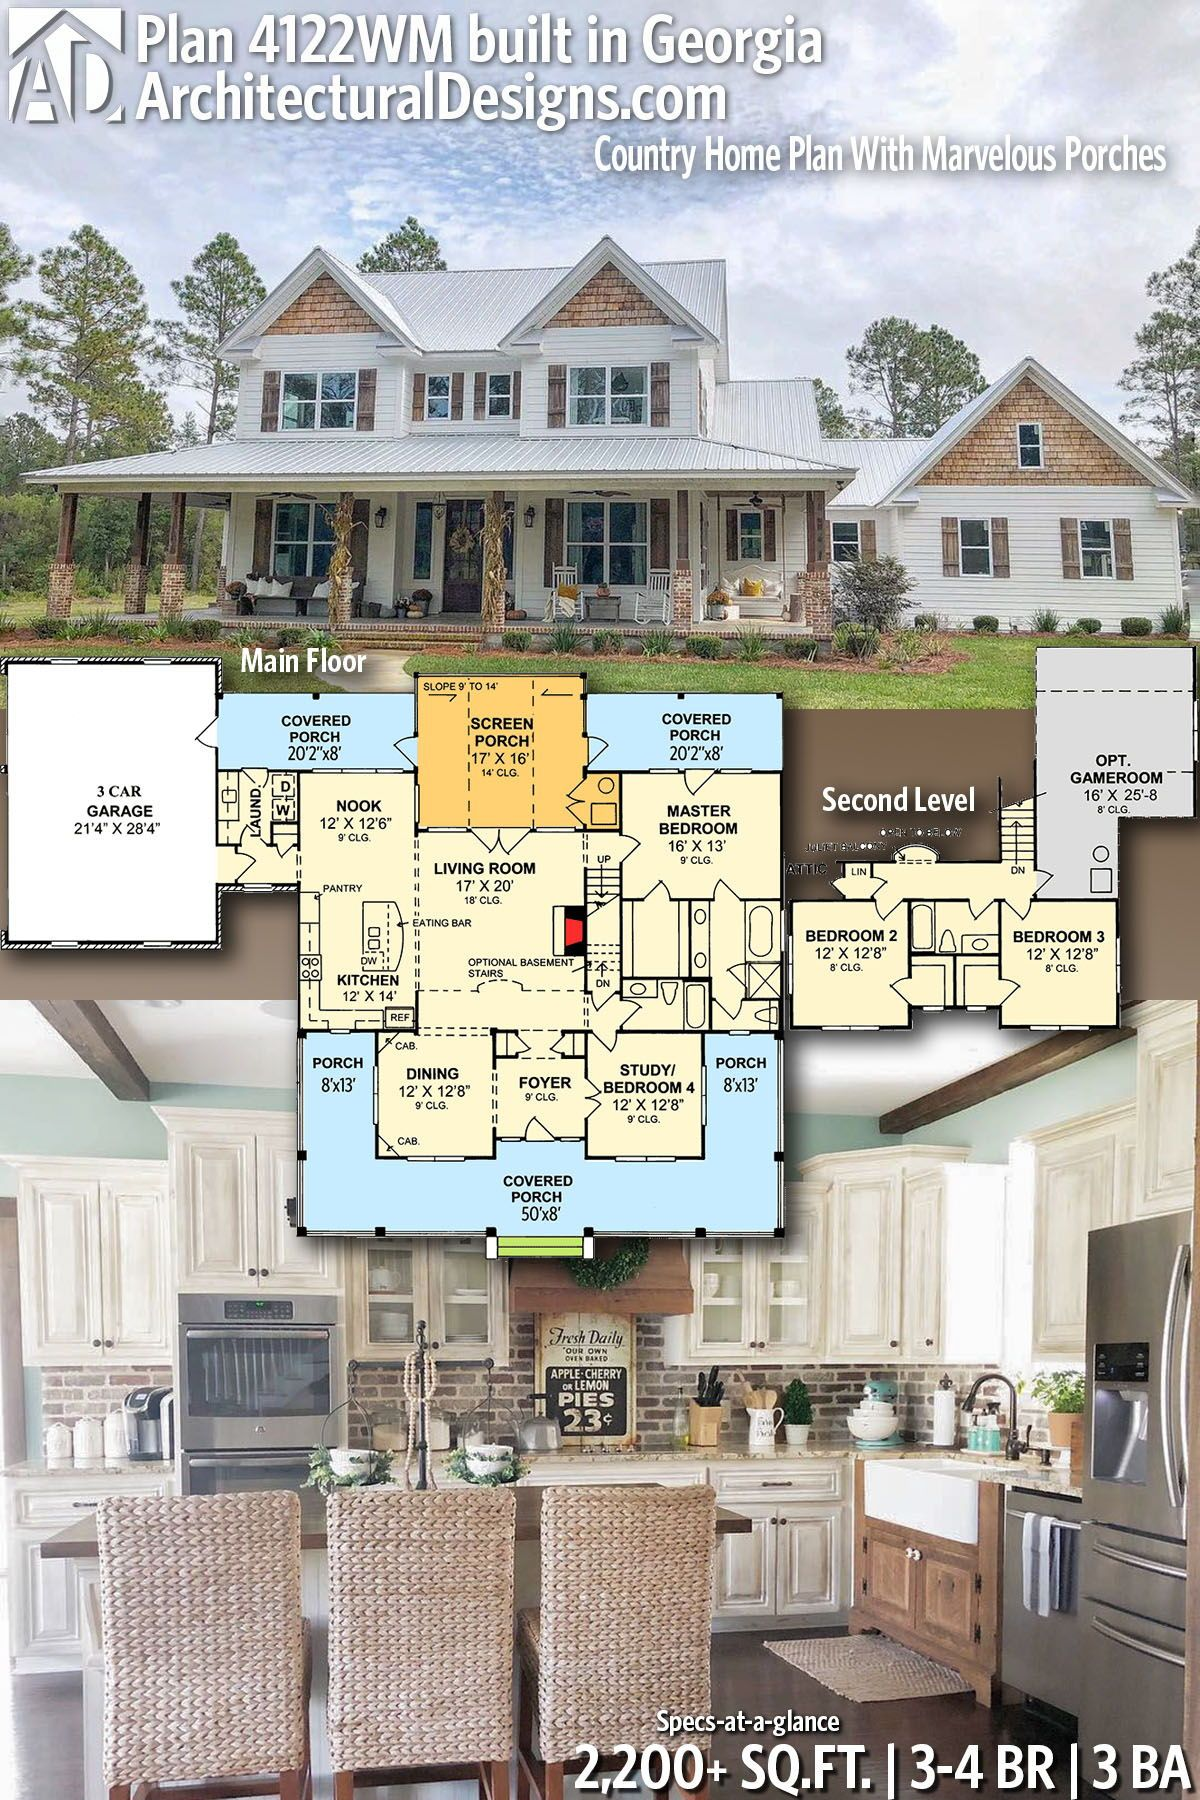 Plan 4122WM: Country Home Plan With Marvelous Porc